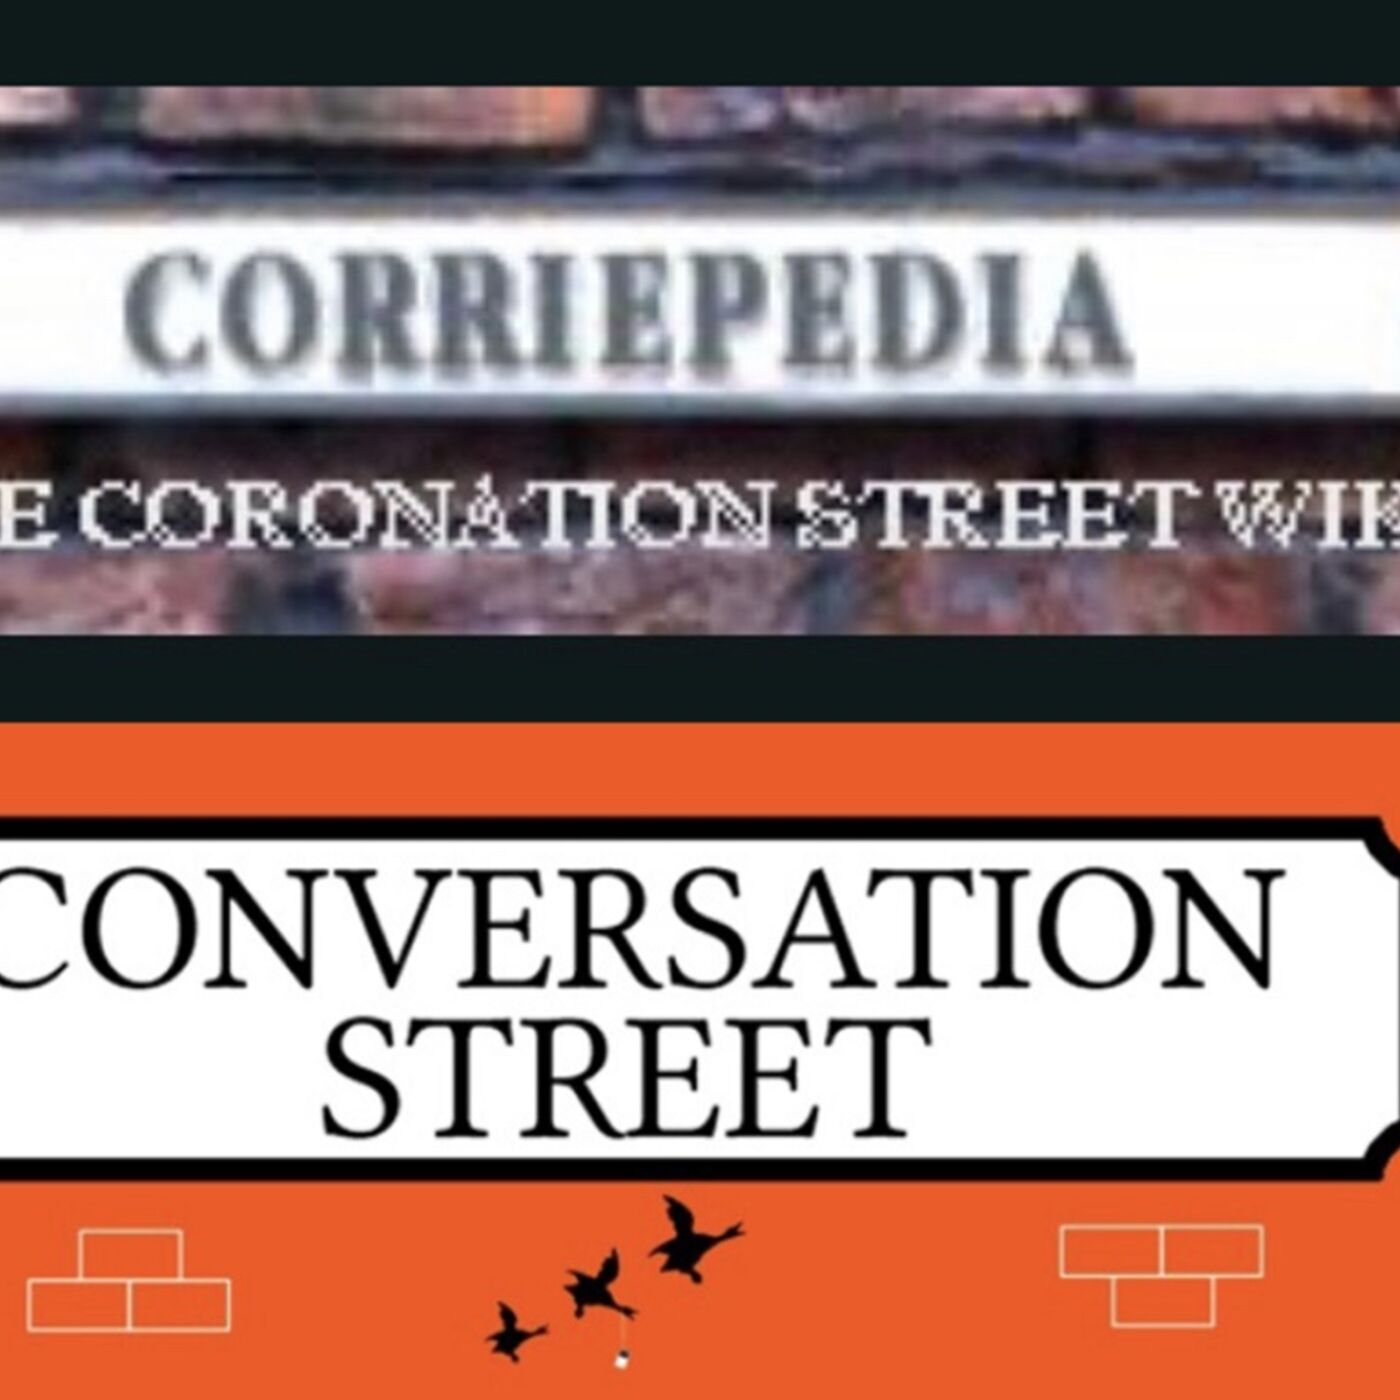 Distinct Nostalgia Mind of the Month Corrie Super Fan Final - Corriepedia V Conversation Street